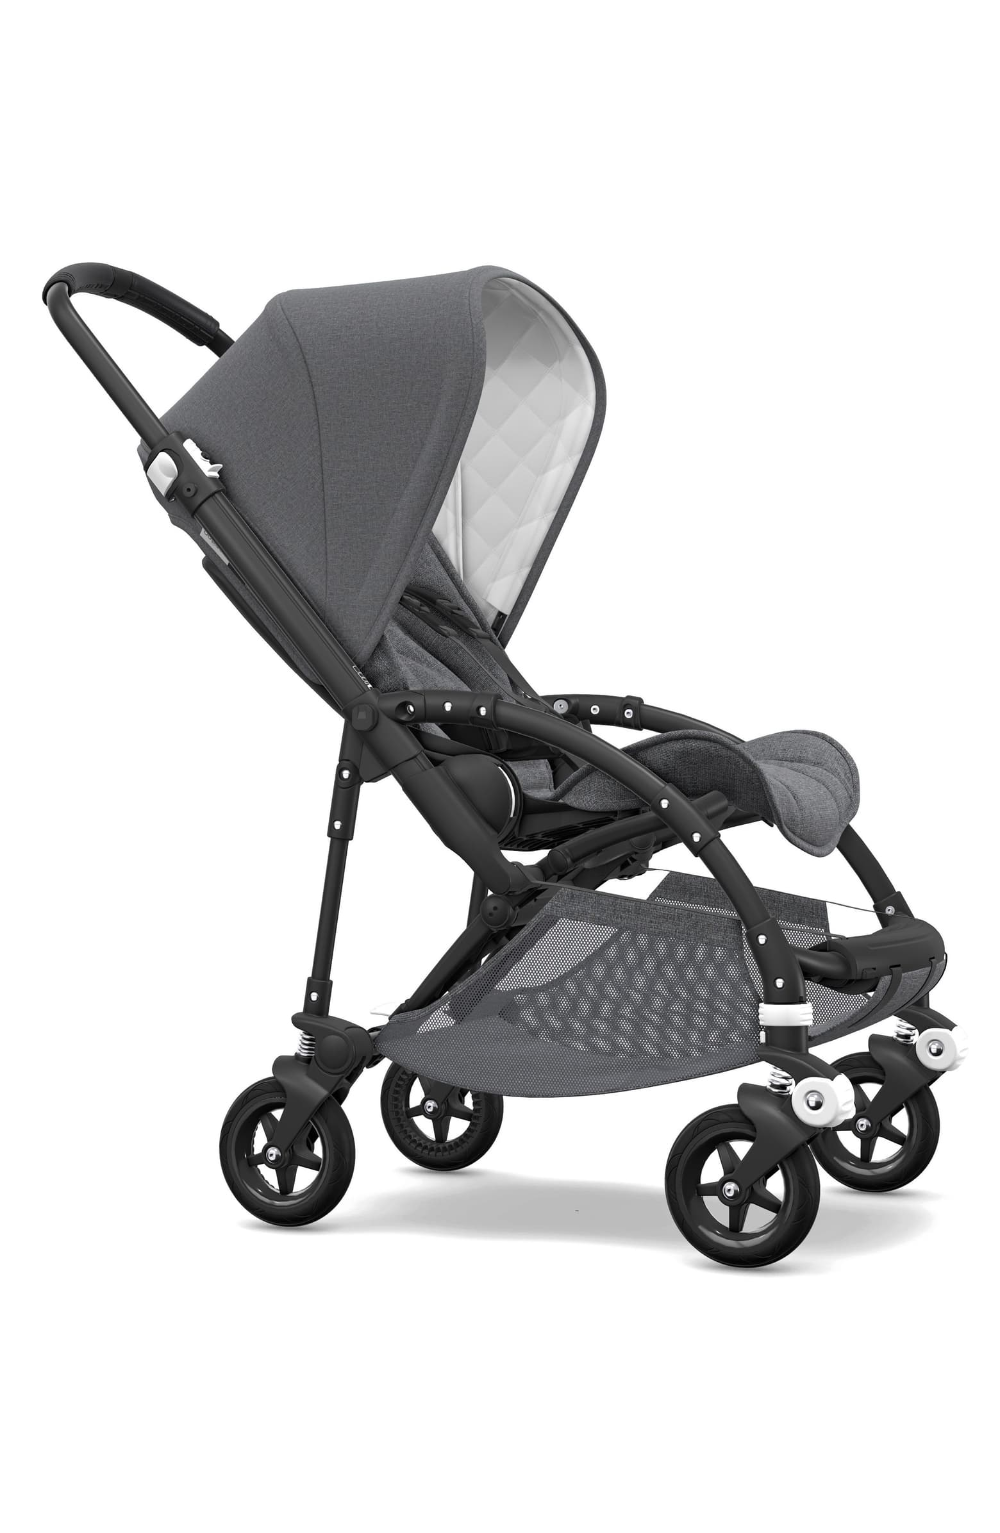 Pin by あいろん on ベビー in 2020 Bugaboo bee, Stroller, Bugaboo